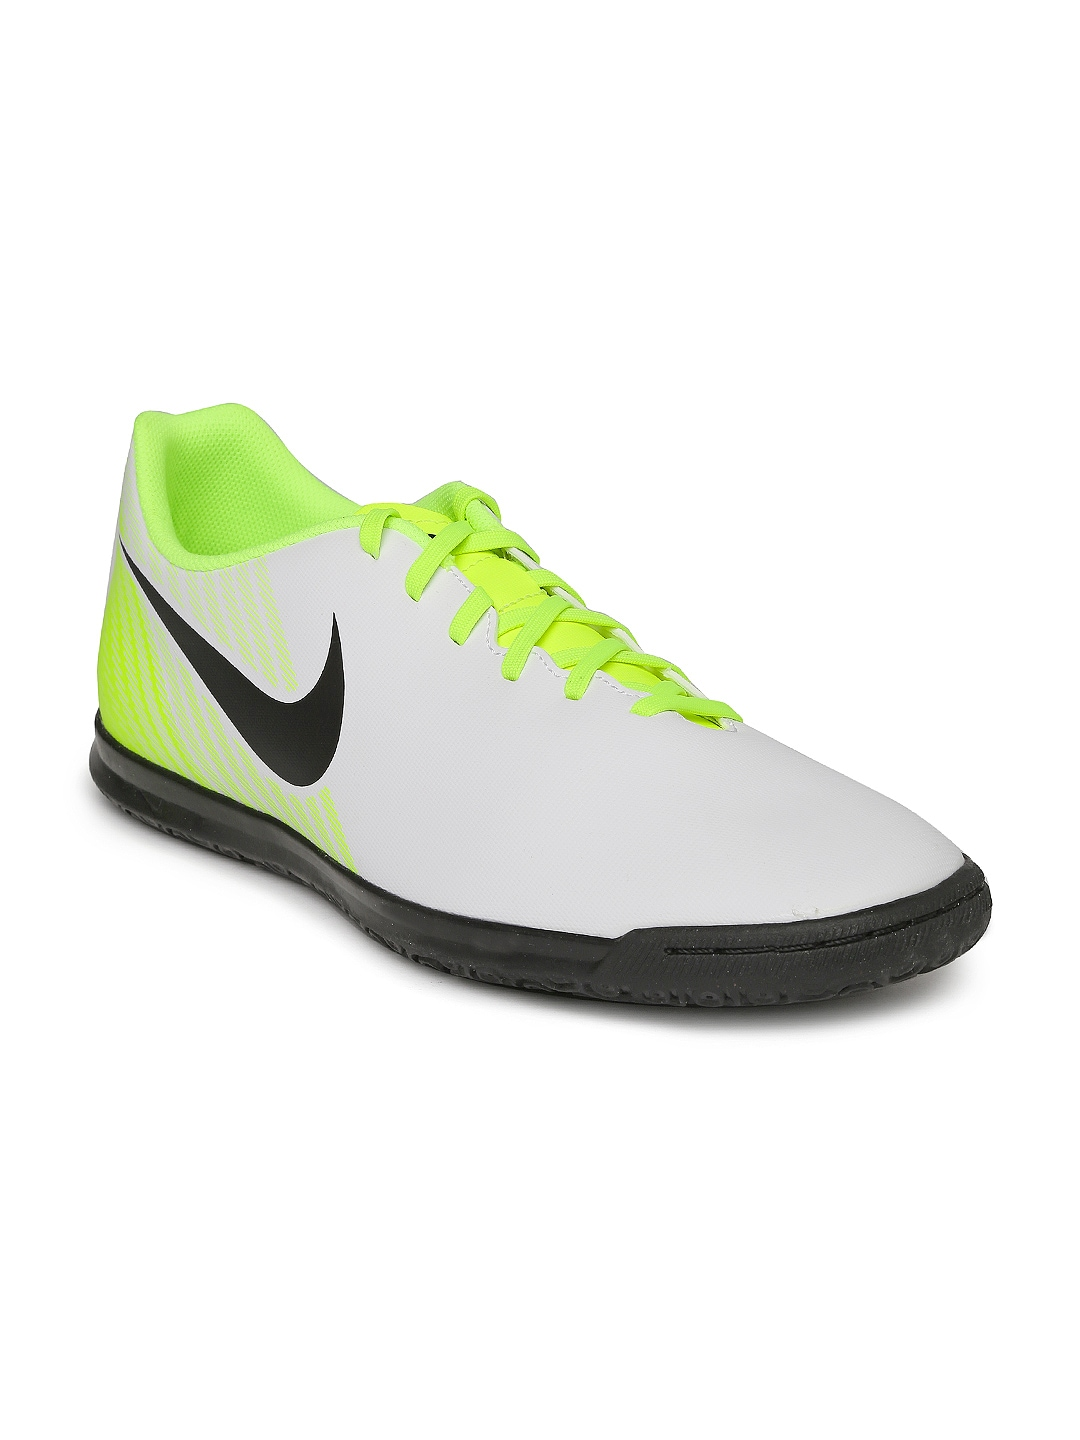 d6dcf2d5c92 Nike Shoes - Buy Nike Shoes for Men